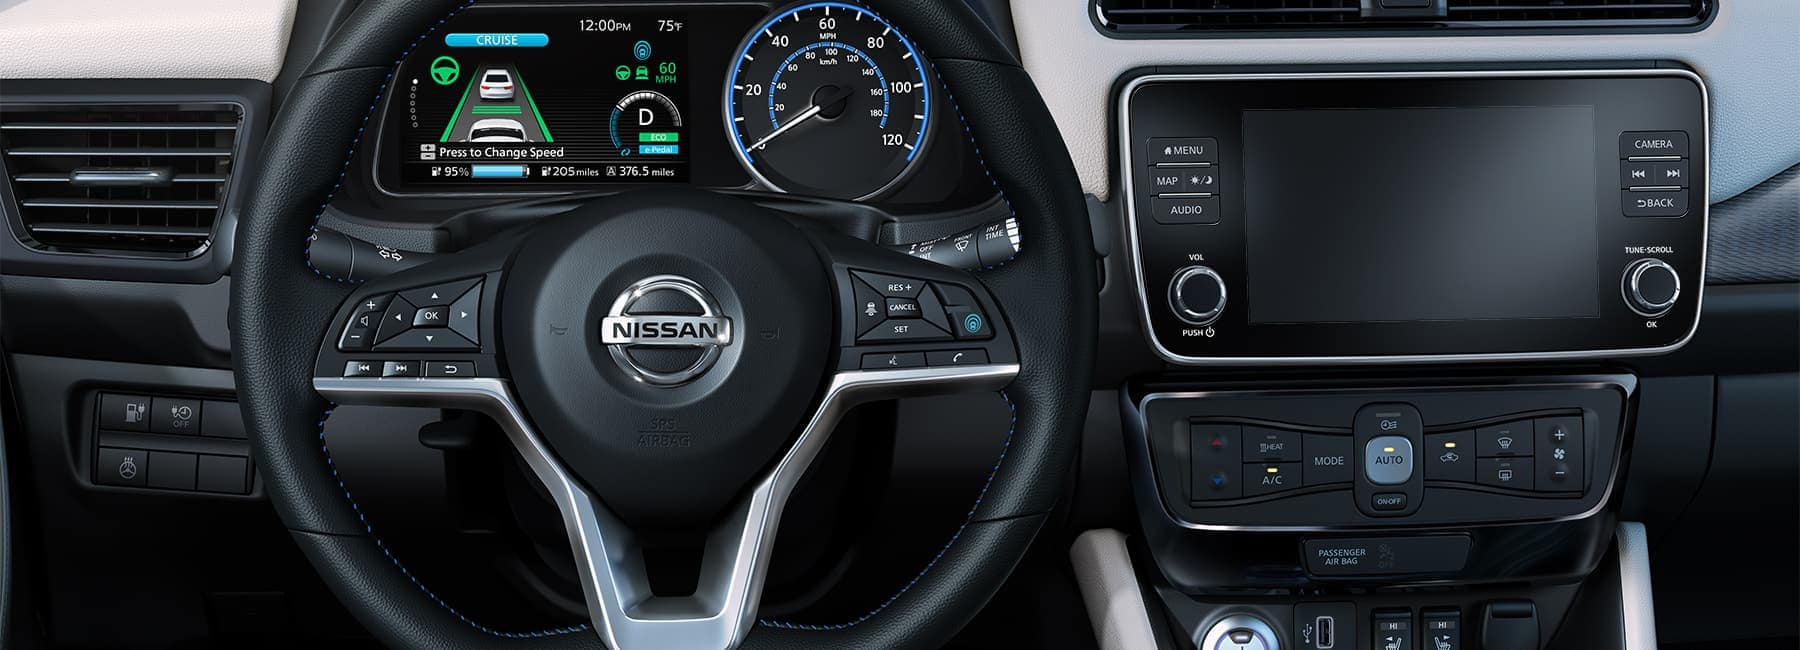 2020 nissan leaf interior steering wheel